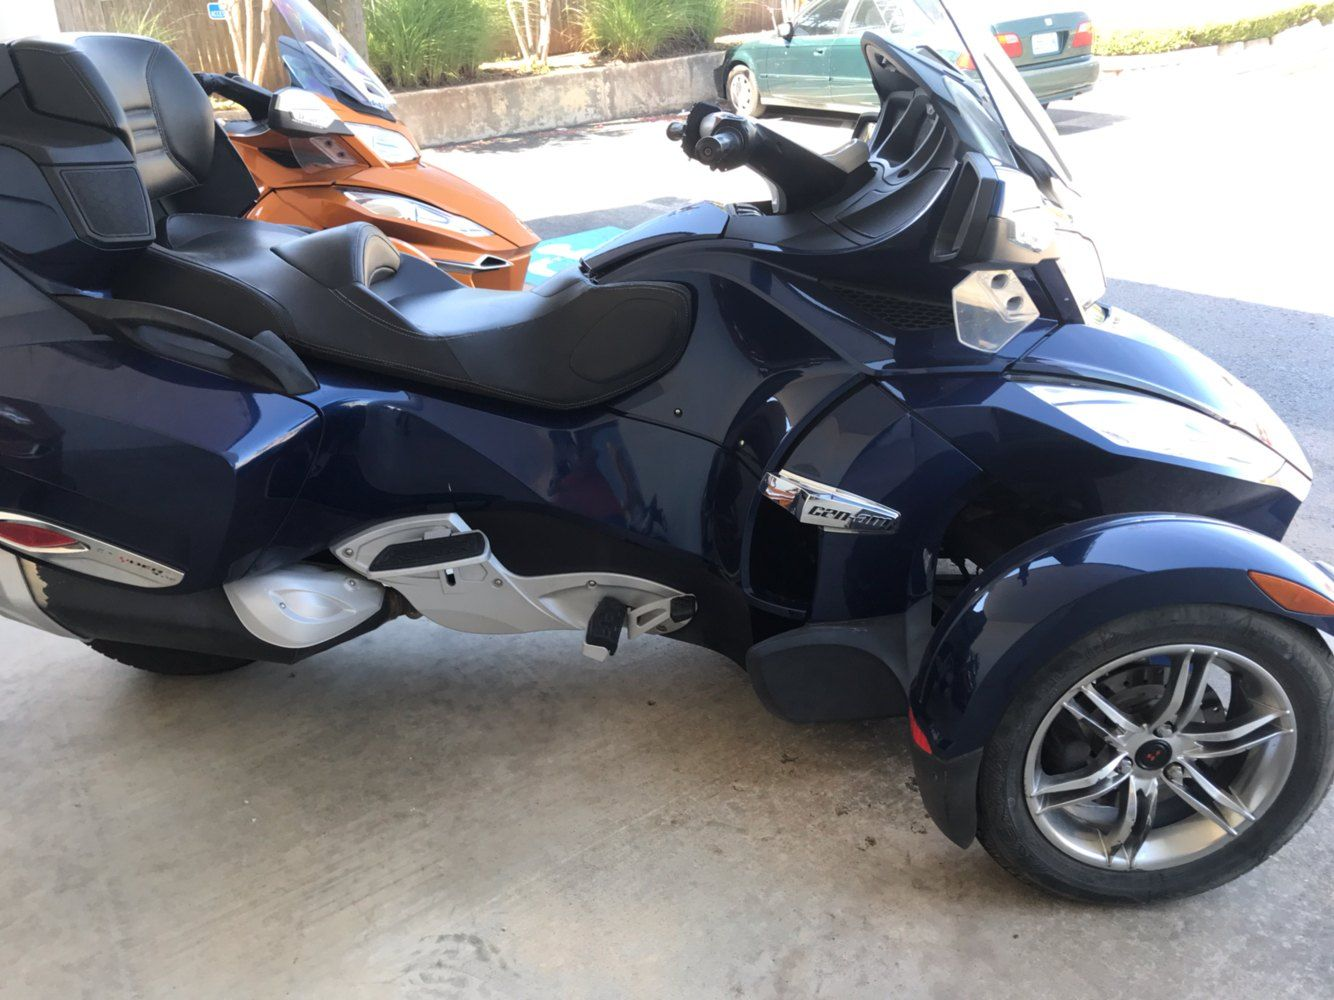 2010 Can-Am Spyder® RT-S SE5 in Tulsa, Oklahoma - Photo 1